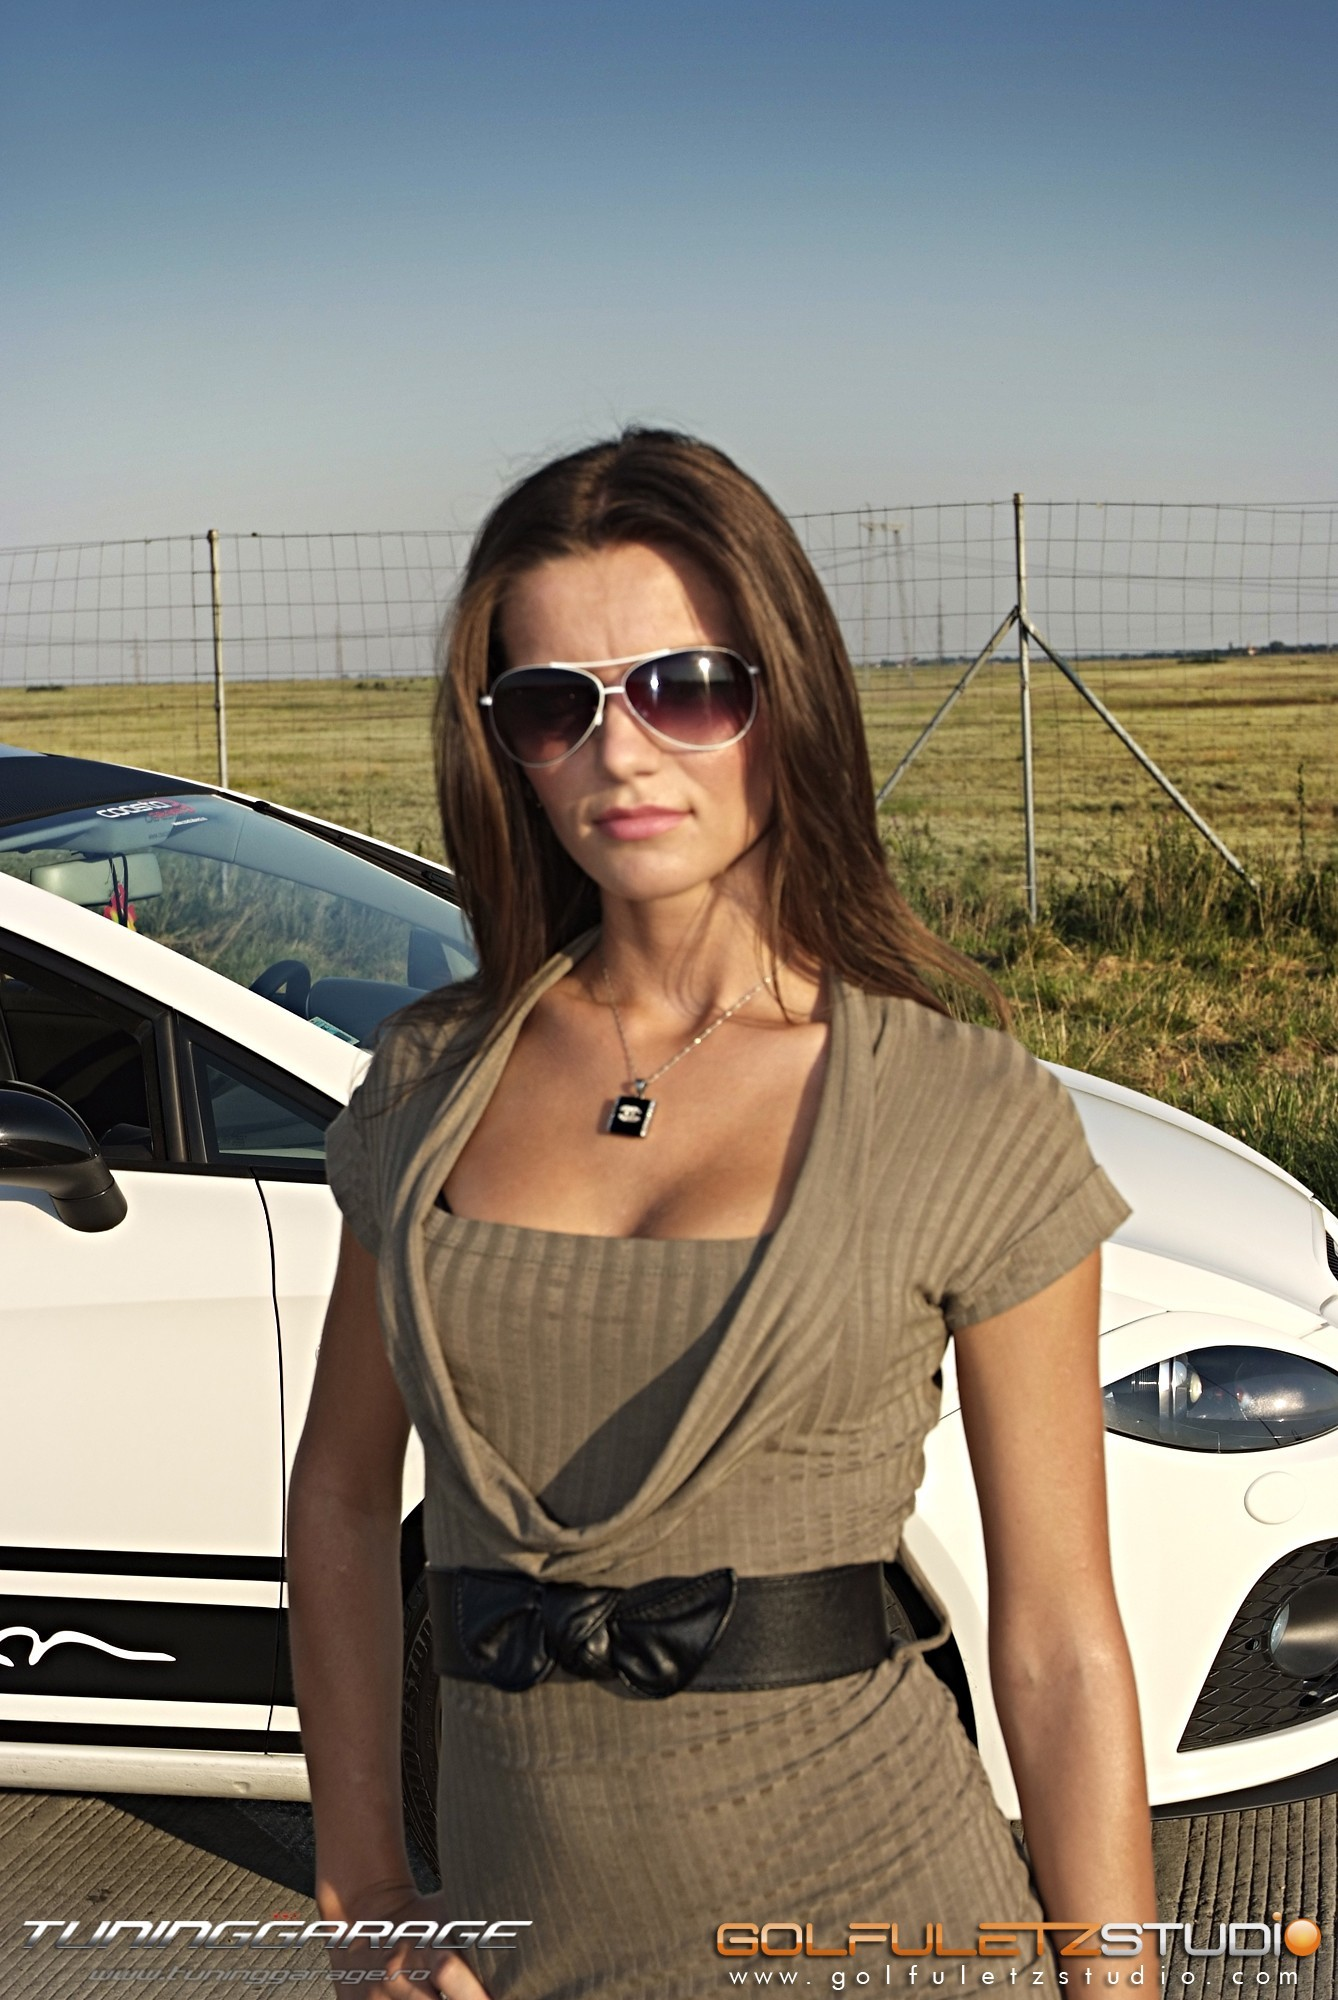 woman cars Seat Leon HD Wallpaper